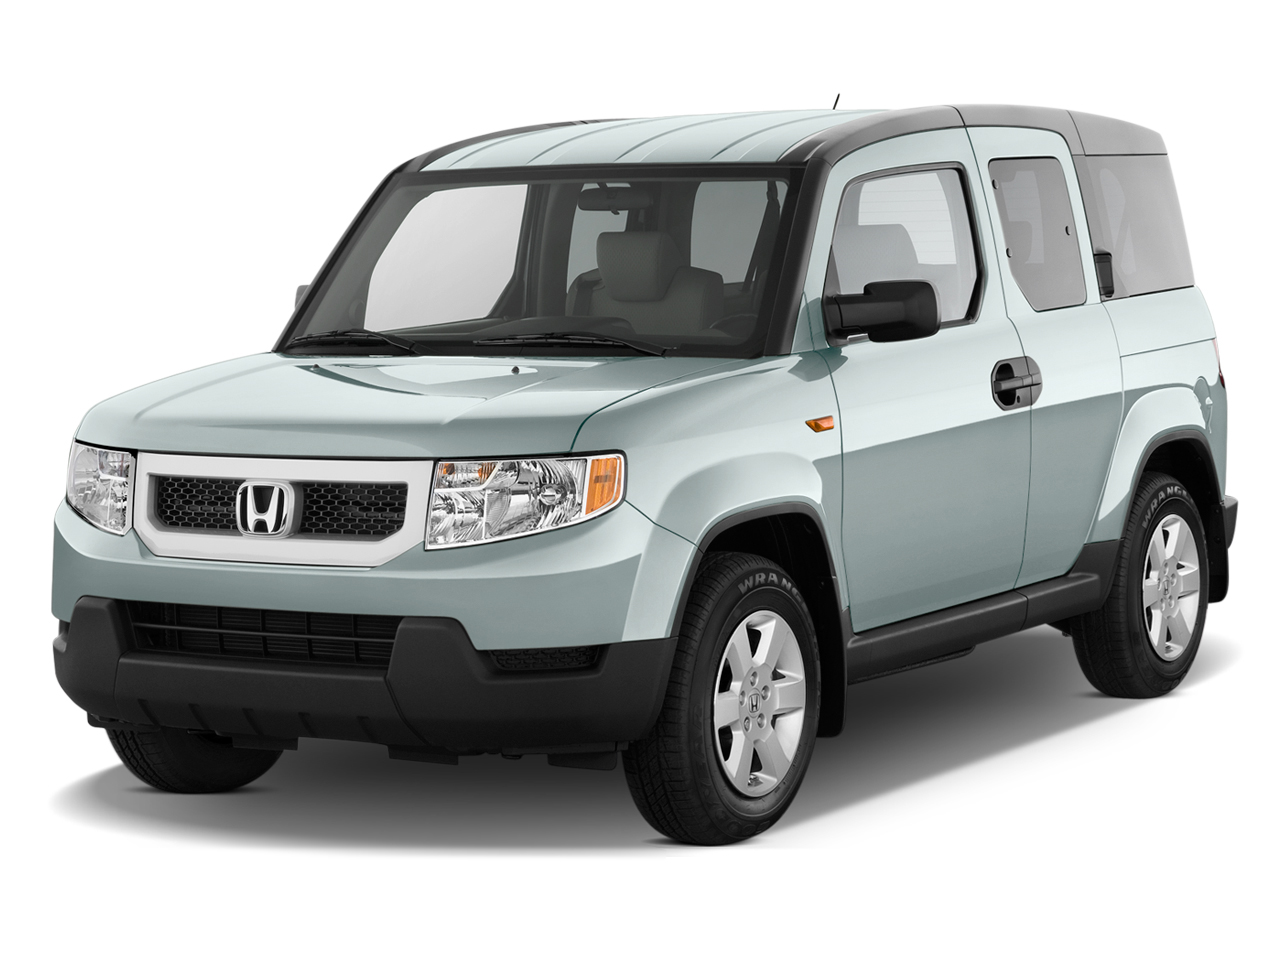 New And Used Honda Element Prices Photos Reviews Specs